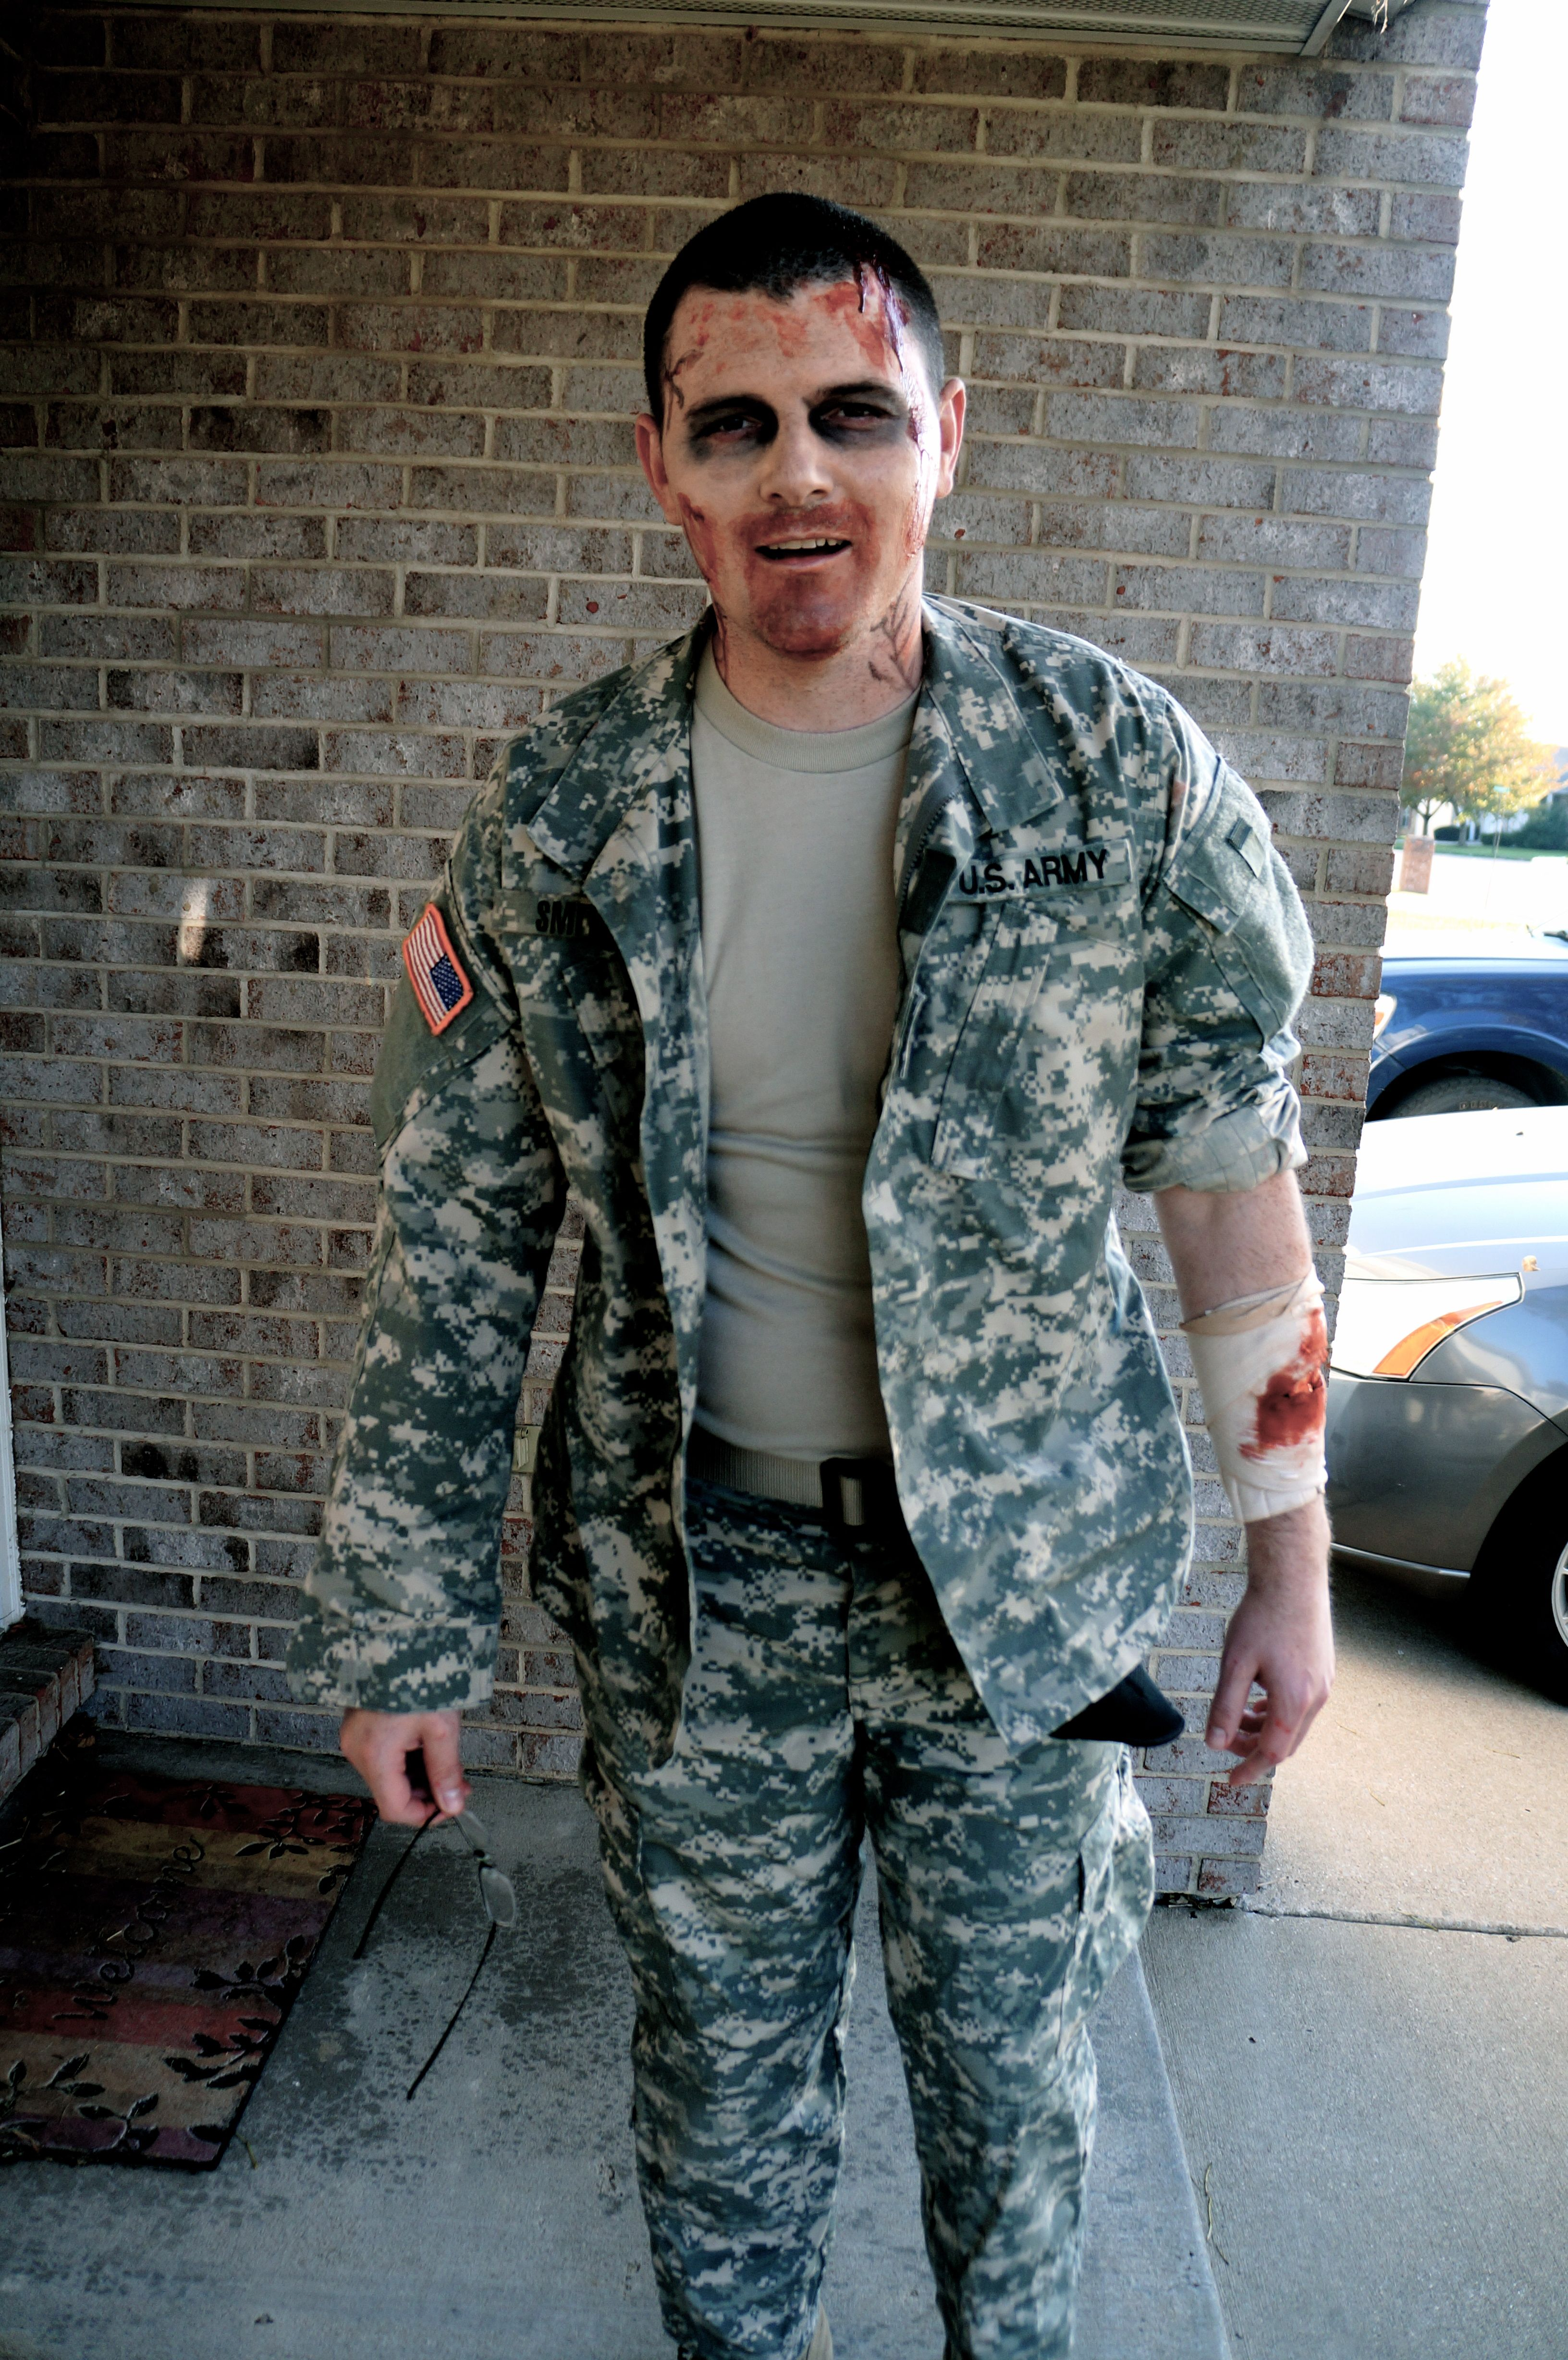 Zombie soldier. #halloweeen #zombie #costume  sc 1 st  Pinterest & Zombie soldier. #halloweeen #zombie #costume | Holiday Decorations ...